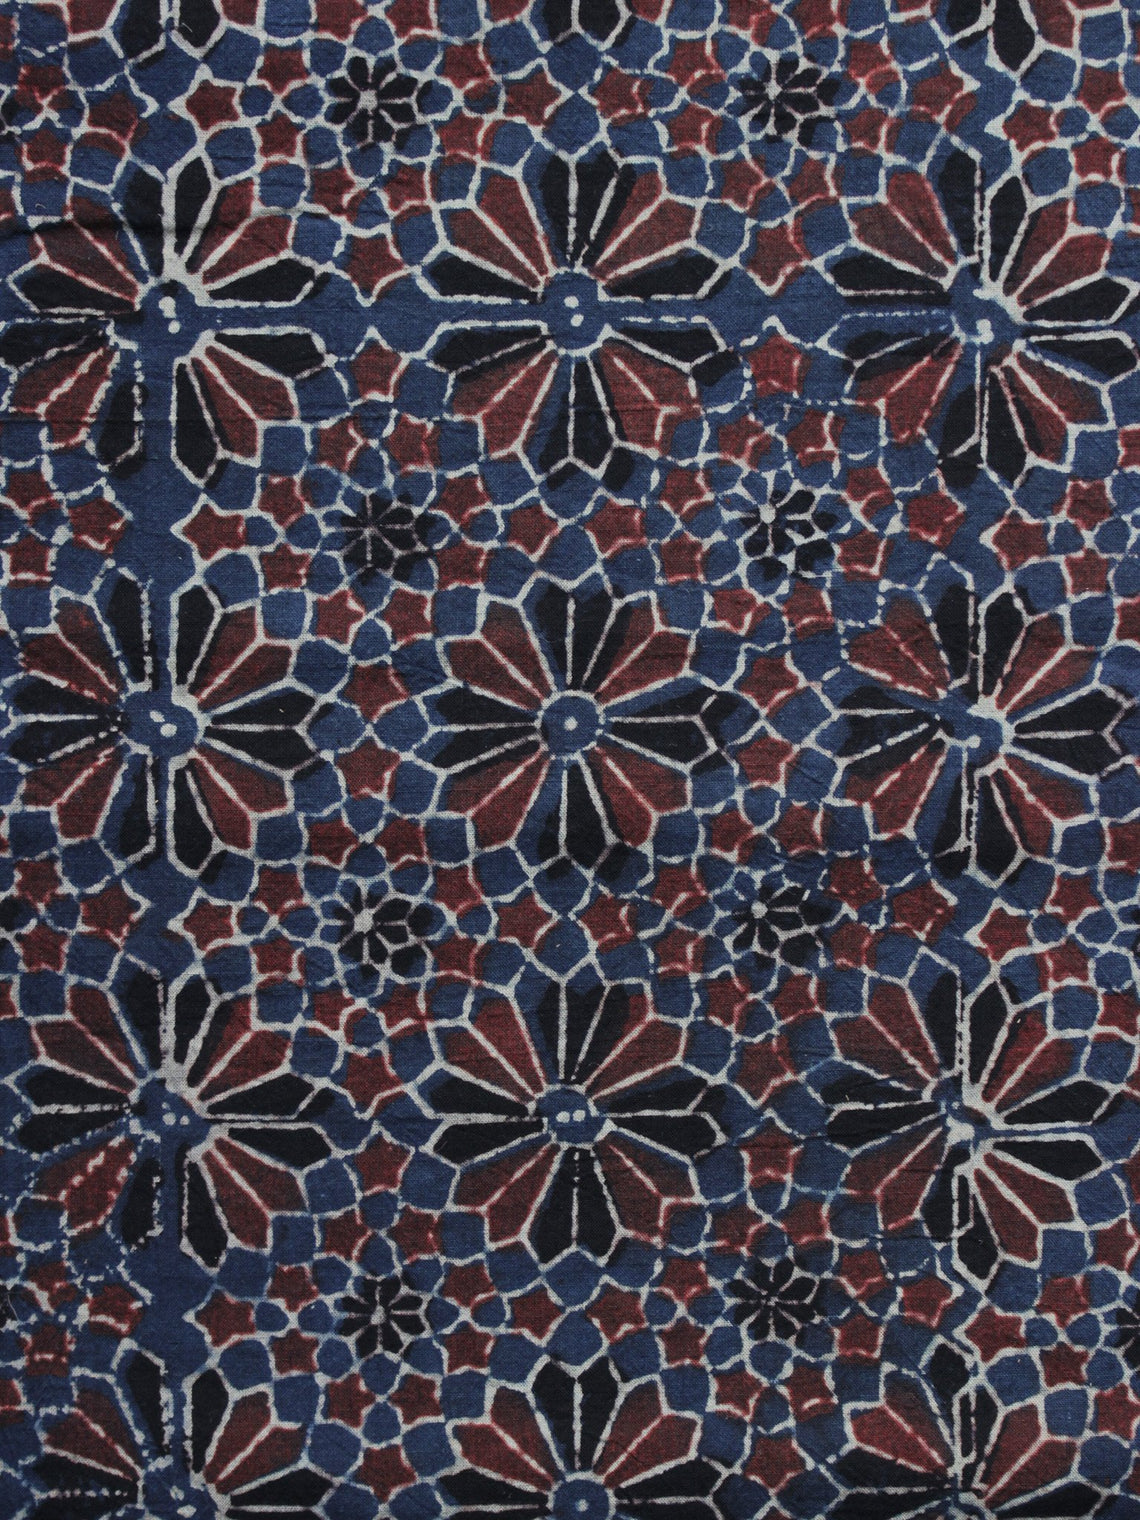 Blue Red Black  Ajrakh Printed Cotton Fabric Per Meter - F003F1213